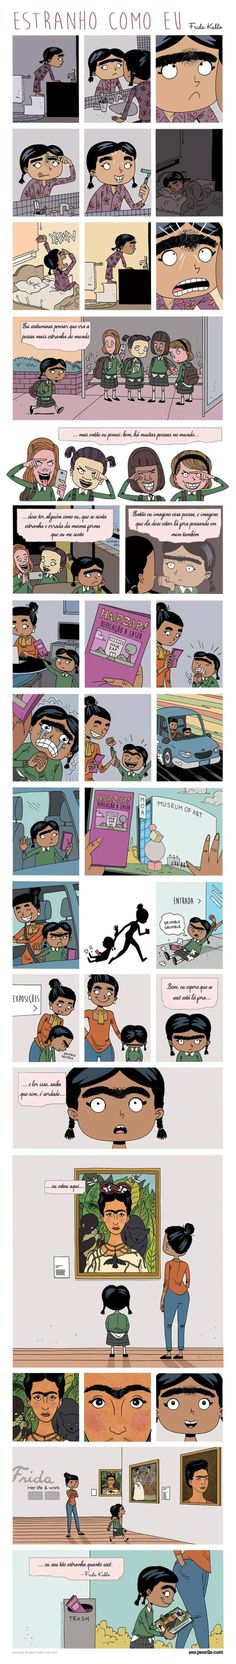 Frida Kahlo comic strip by Gavin Aung Than on Bored Panda. There are many more … Frida Kahlo comic strip by Gavin Aung Than on Bored Panda. There are many more lie this including Eleanor Roosevelt, Maya Angelou, Vincent Van Gogh… Vincent Van Gogh, Maya Angelou, Rage Comic, Cute Comics, Faith In Humanity, Bored Panda, Eleanor Roosevelt, Comic Strips, Inspire Me